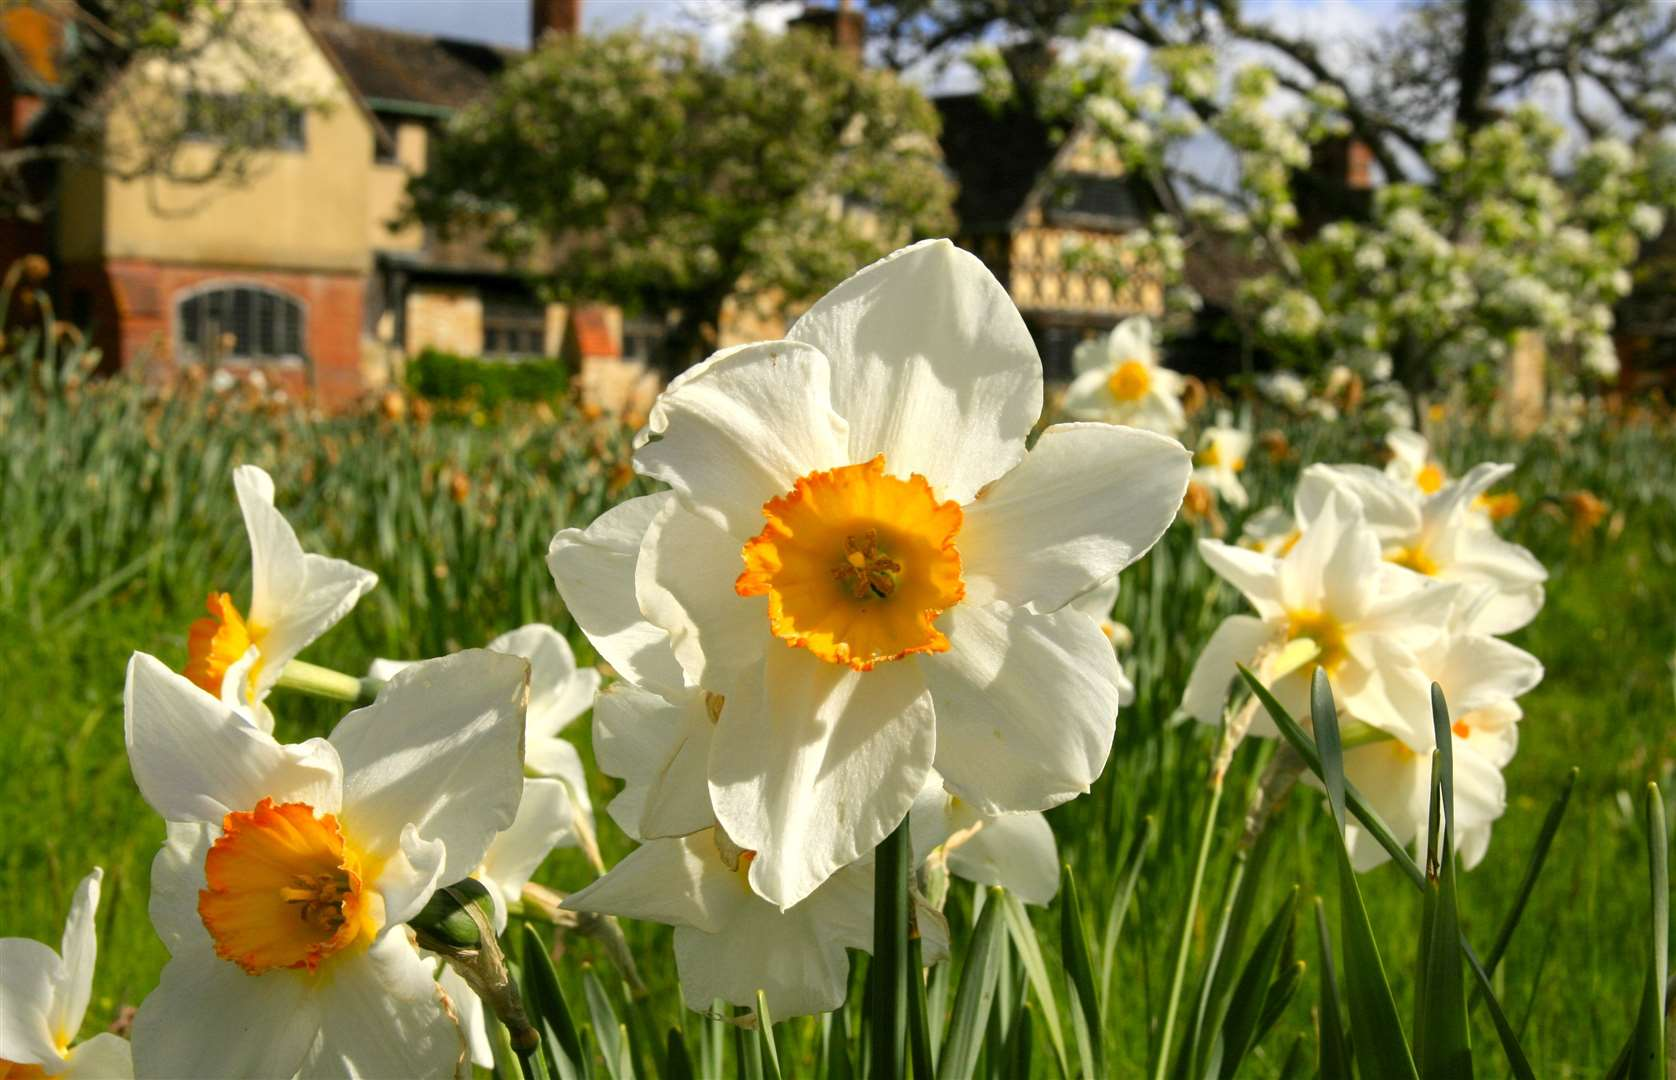 Dazzling Daffodils are coming to Hever